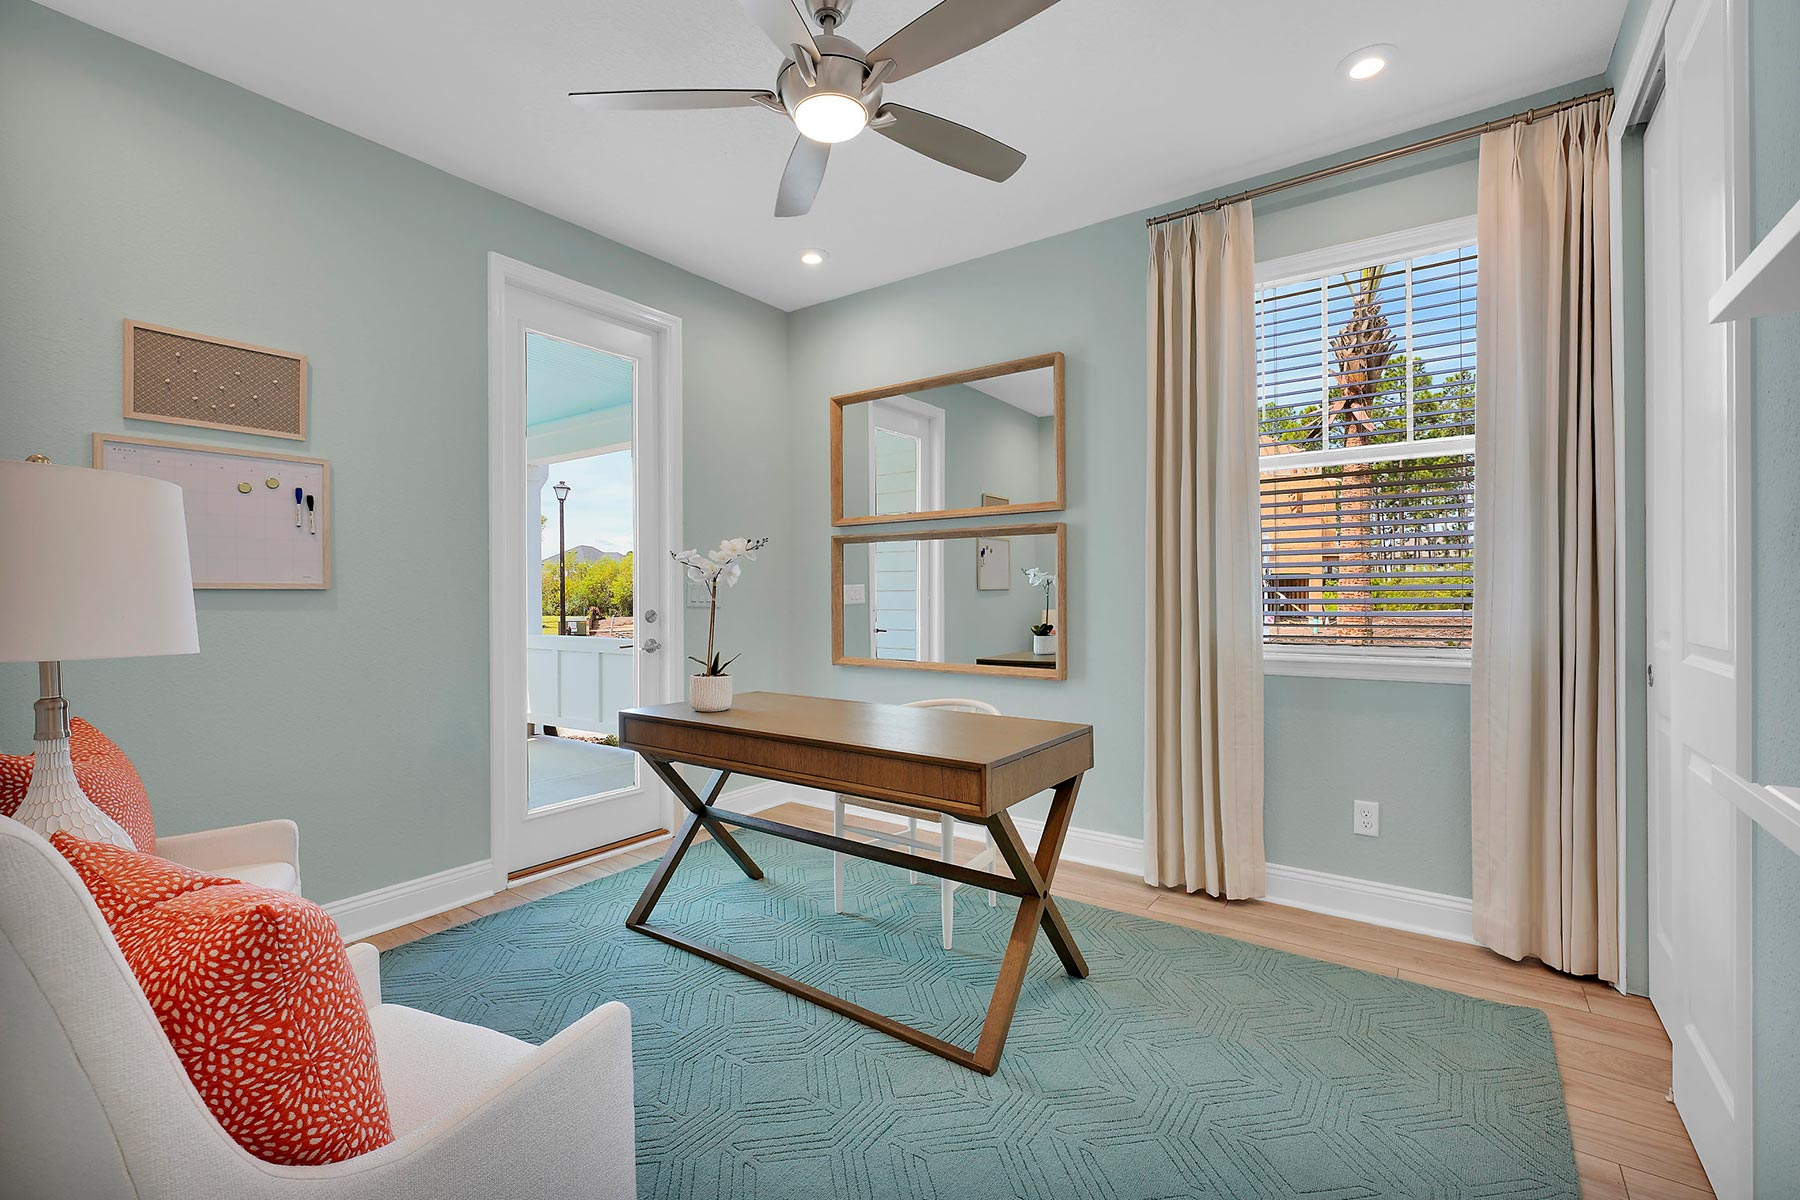 Kai Plan Study Room at Pablo Cove in Jacksonville Florida by Mattamy Homes